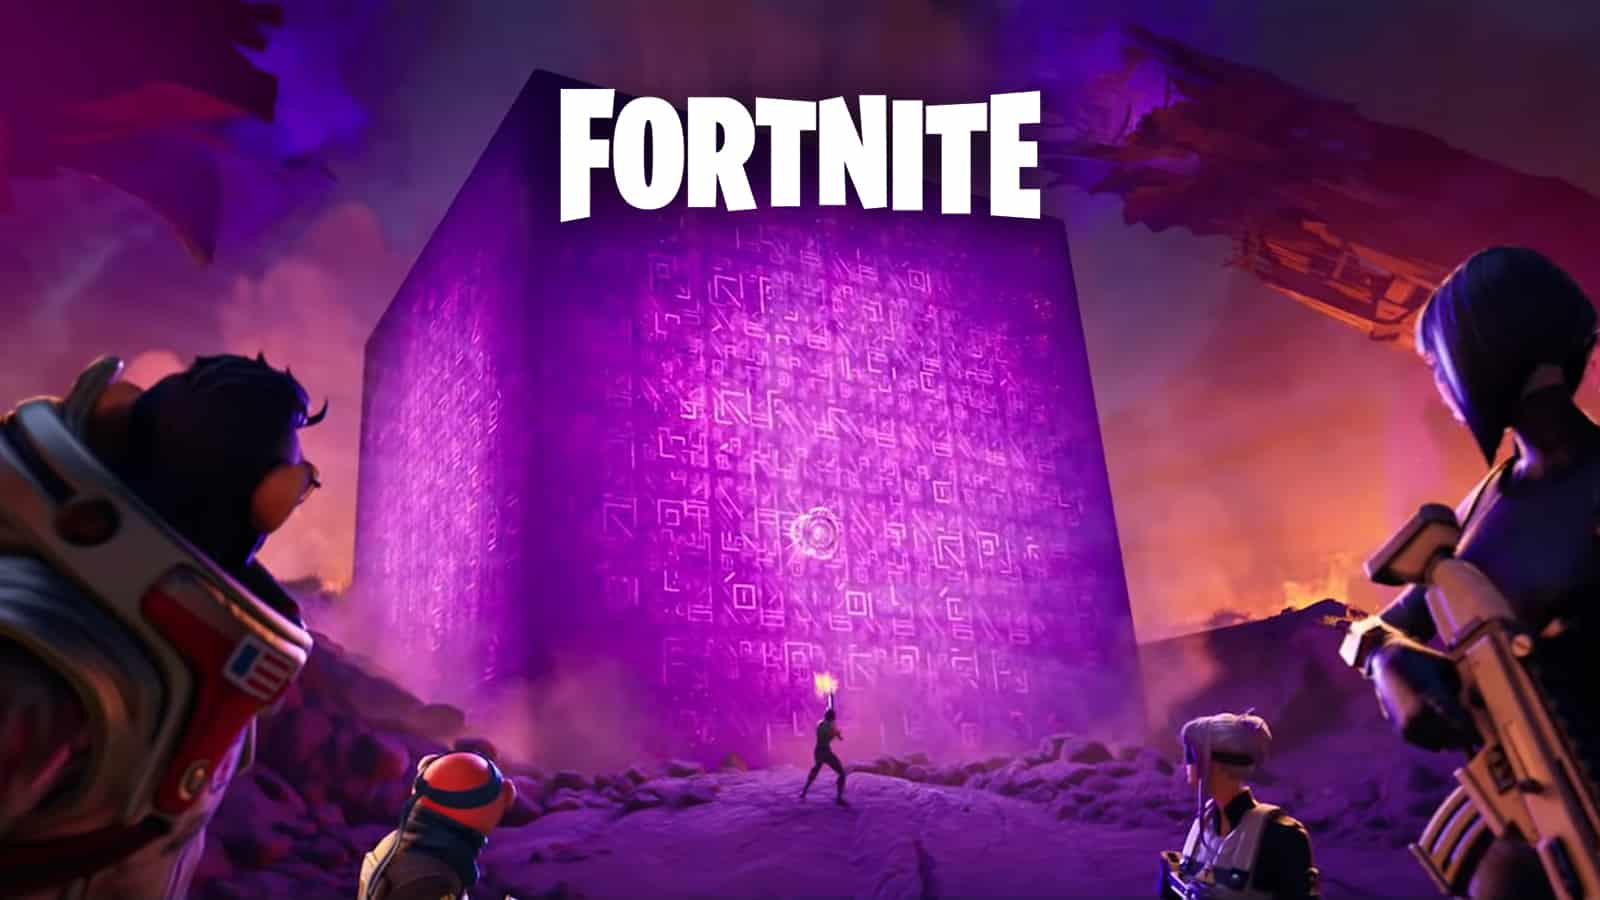 Fortnite Season 8 Chapter 2 patch notes